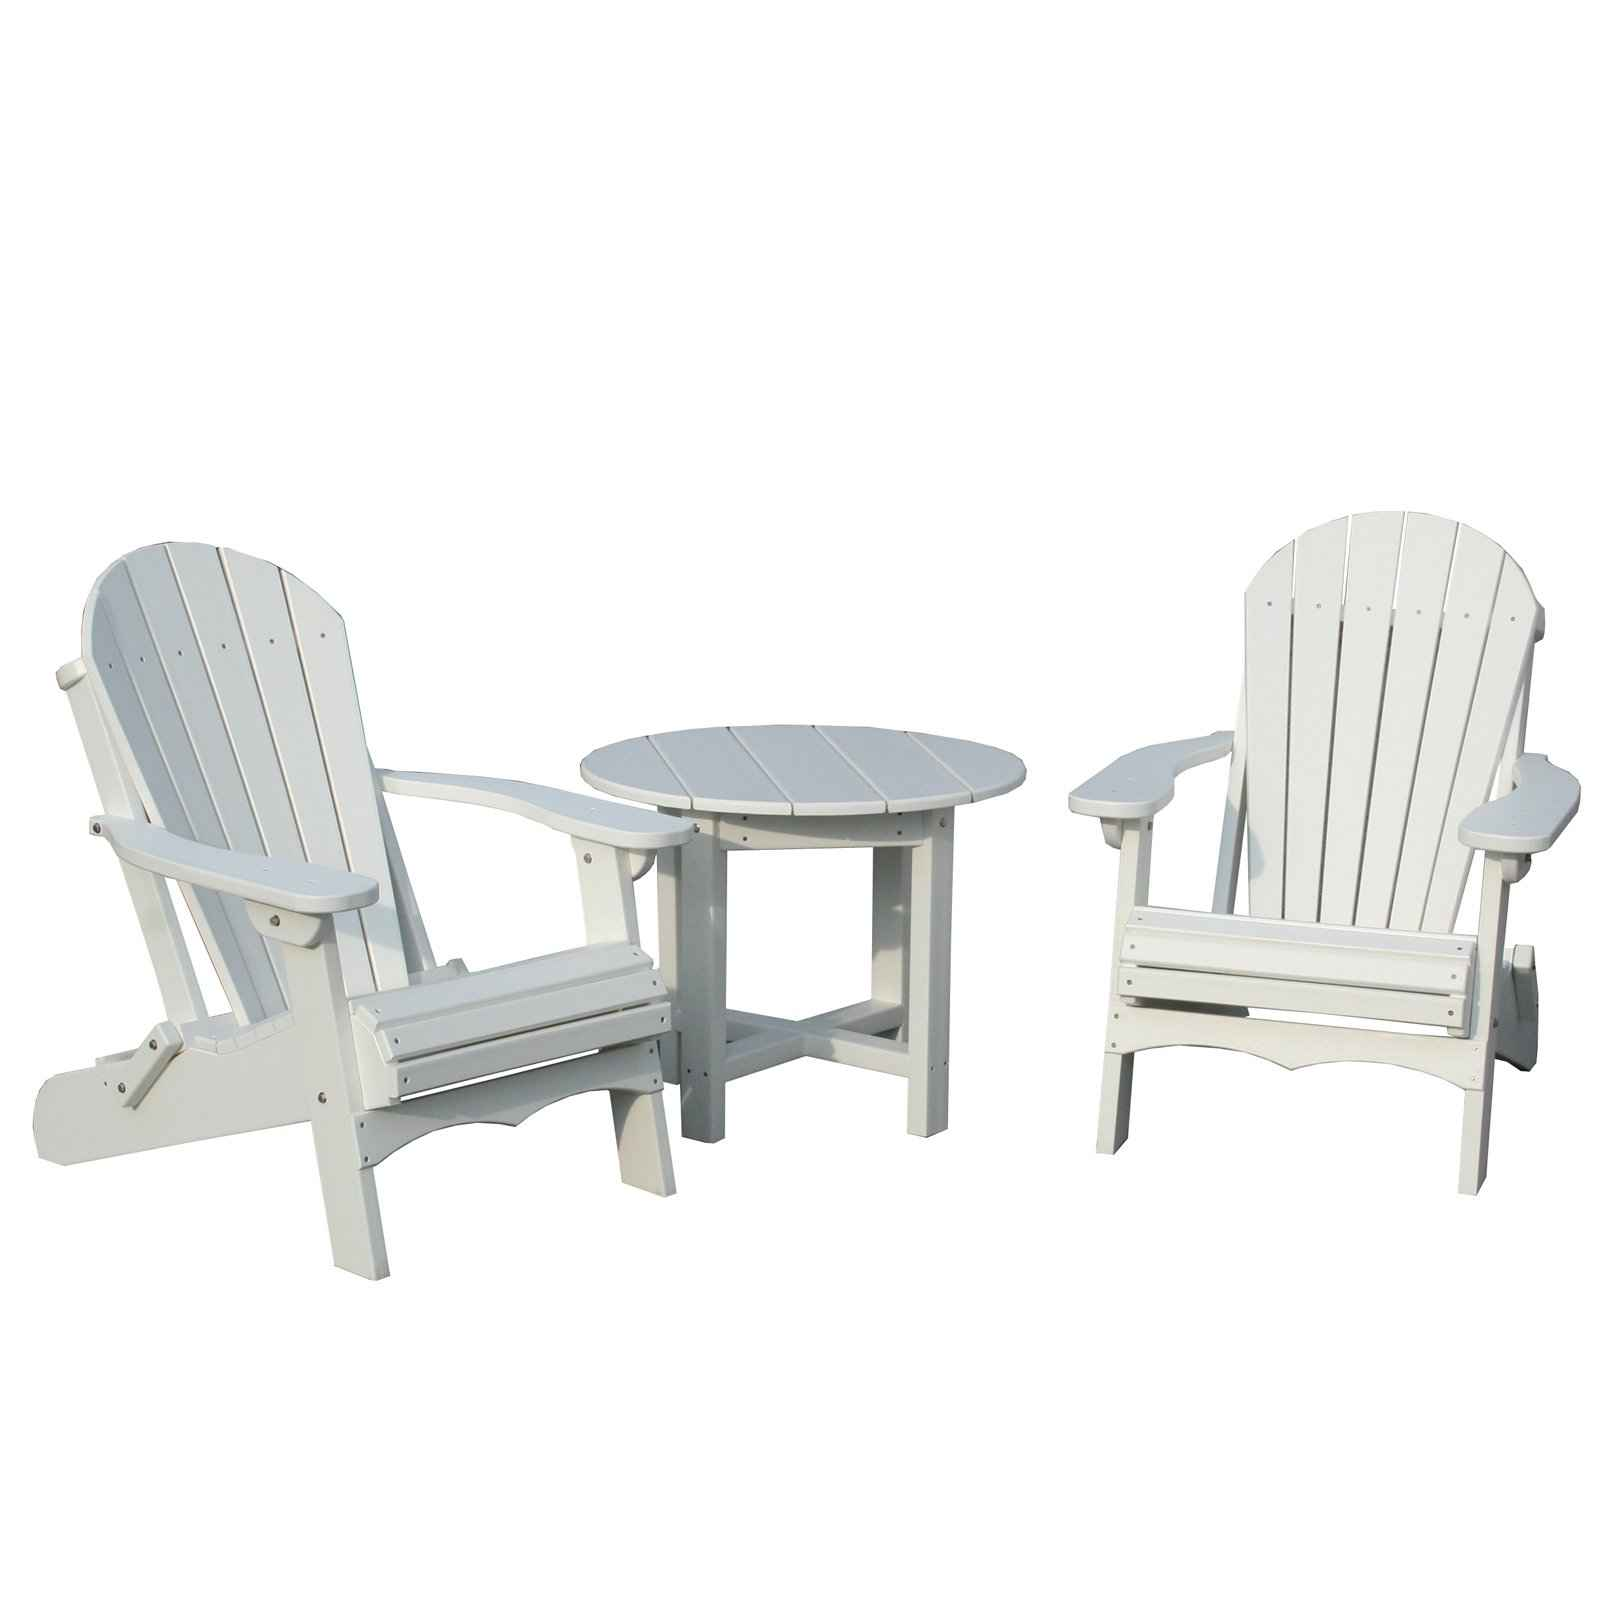 white lawn chairs plastic cheap online patio tables feel the home